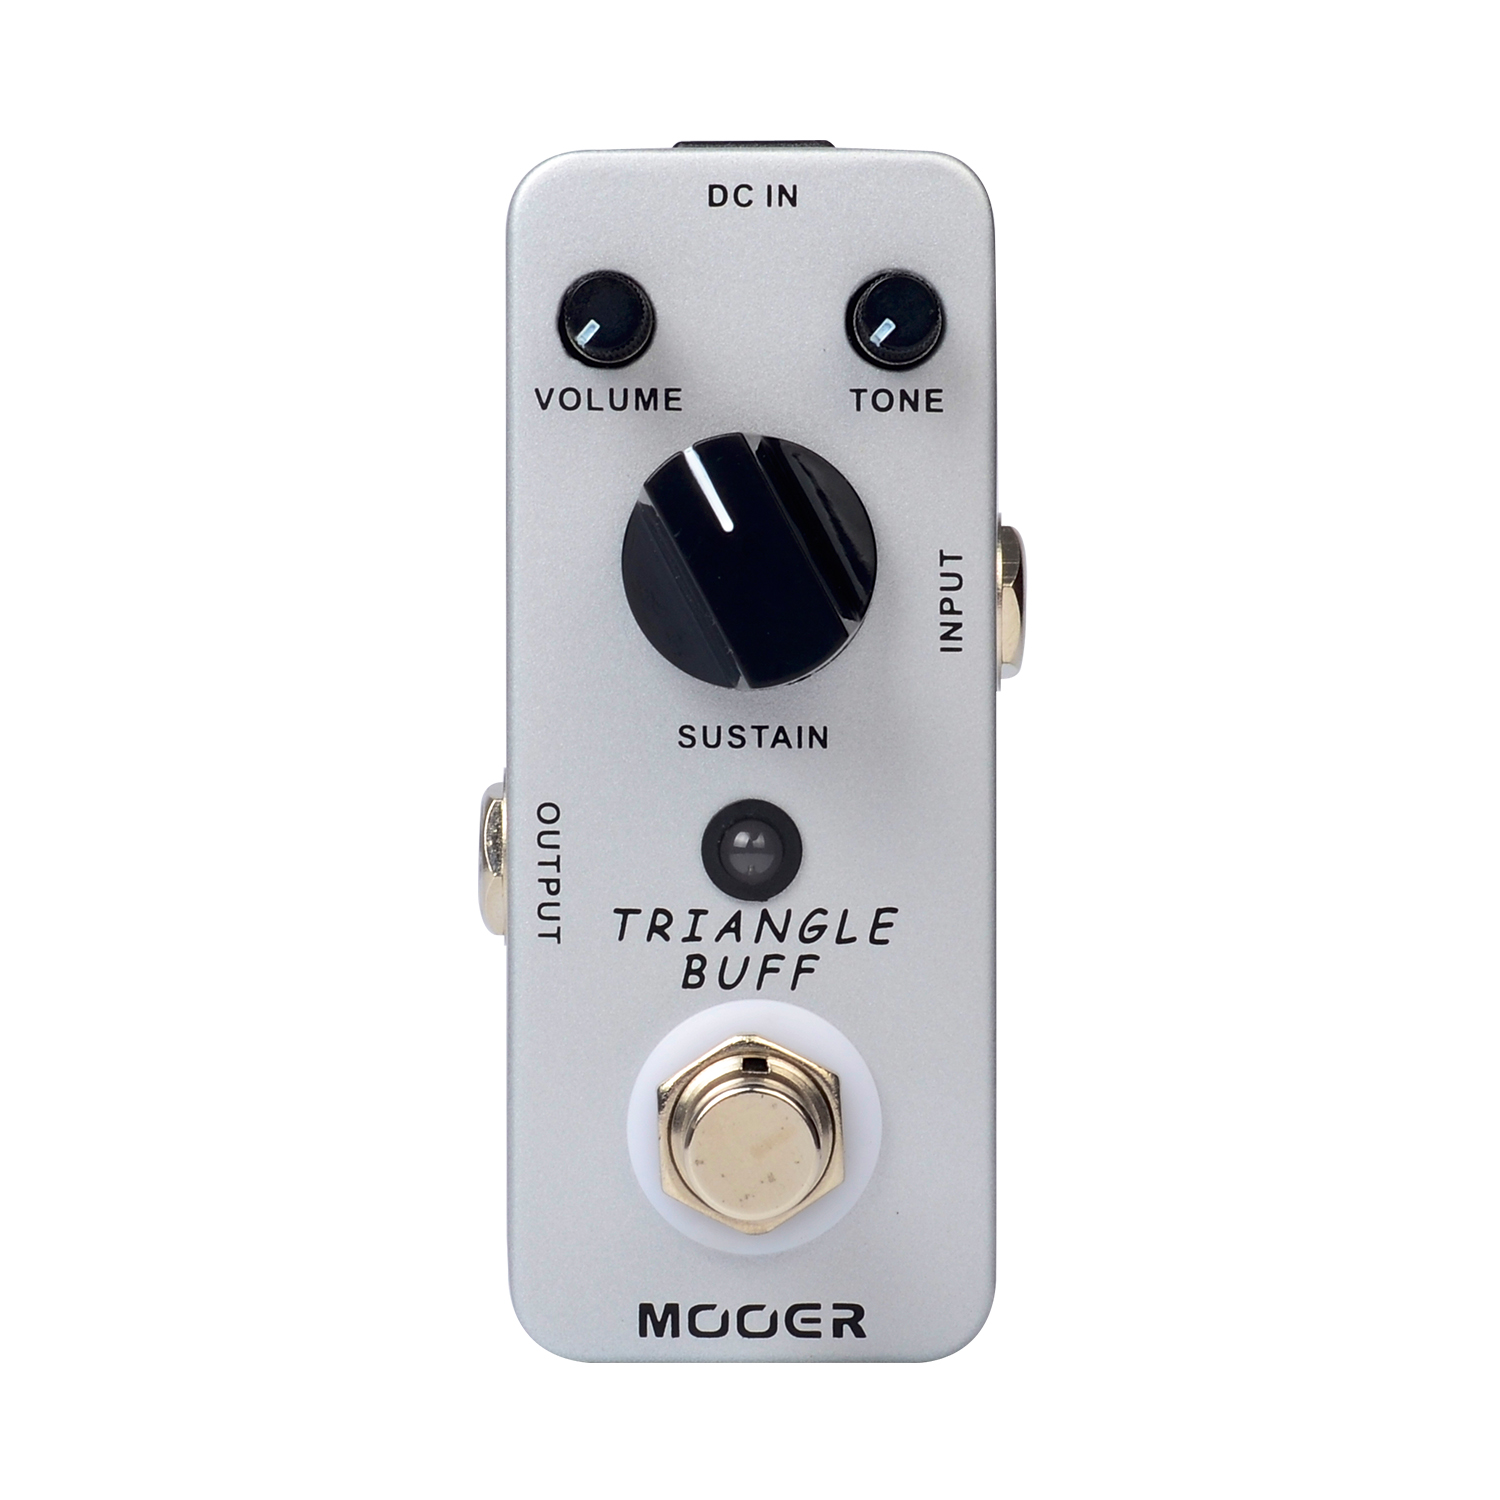 Mooer Triangle Buff Fuzz Electirc Guitar Effect Pedal True Bypass Mini Effects MFZ2 aroma adr 3 dumbler amp simulator guitar effect pedal mini single pedals with true bypass aluminium alloy guitar accessories